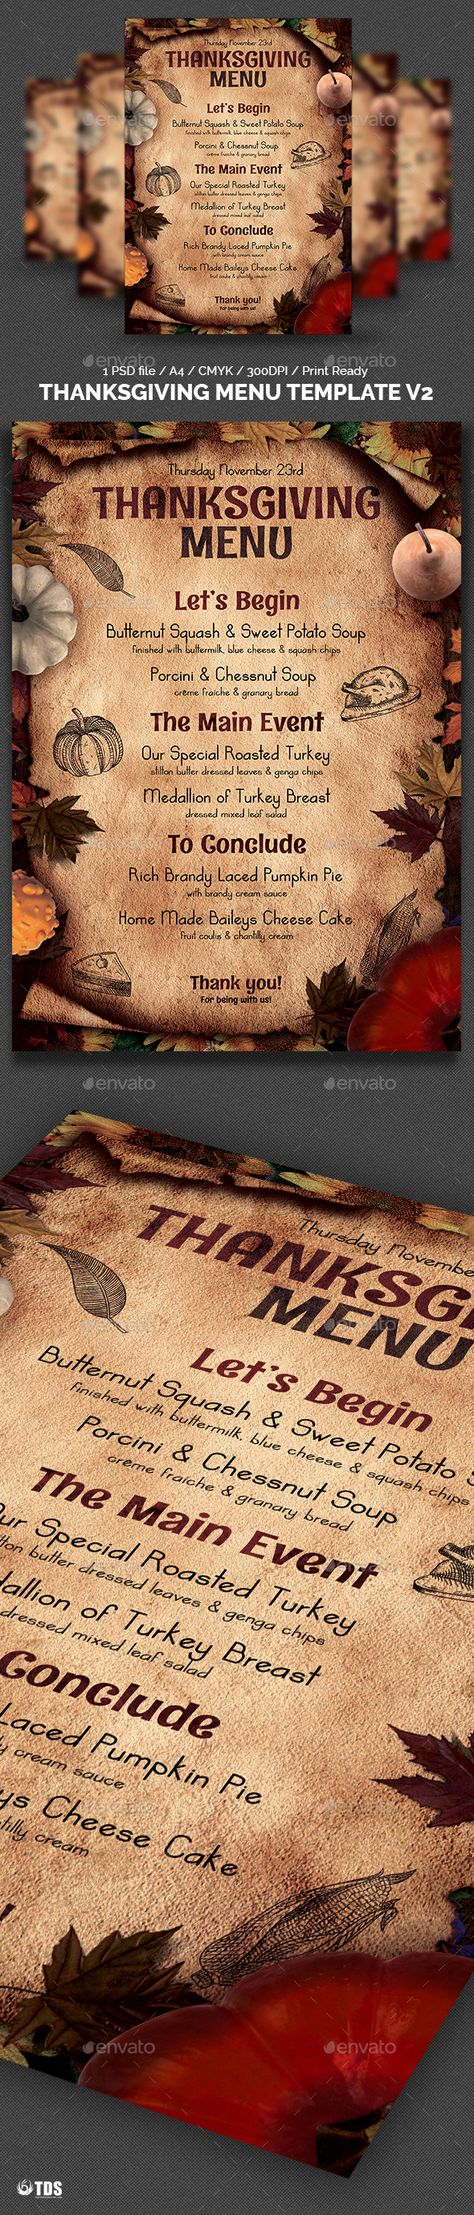 thanksgiving menu template v2 pinterest menu templates